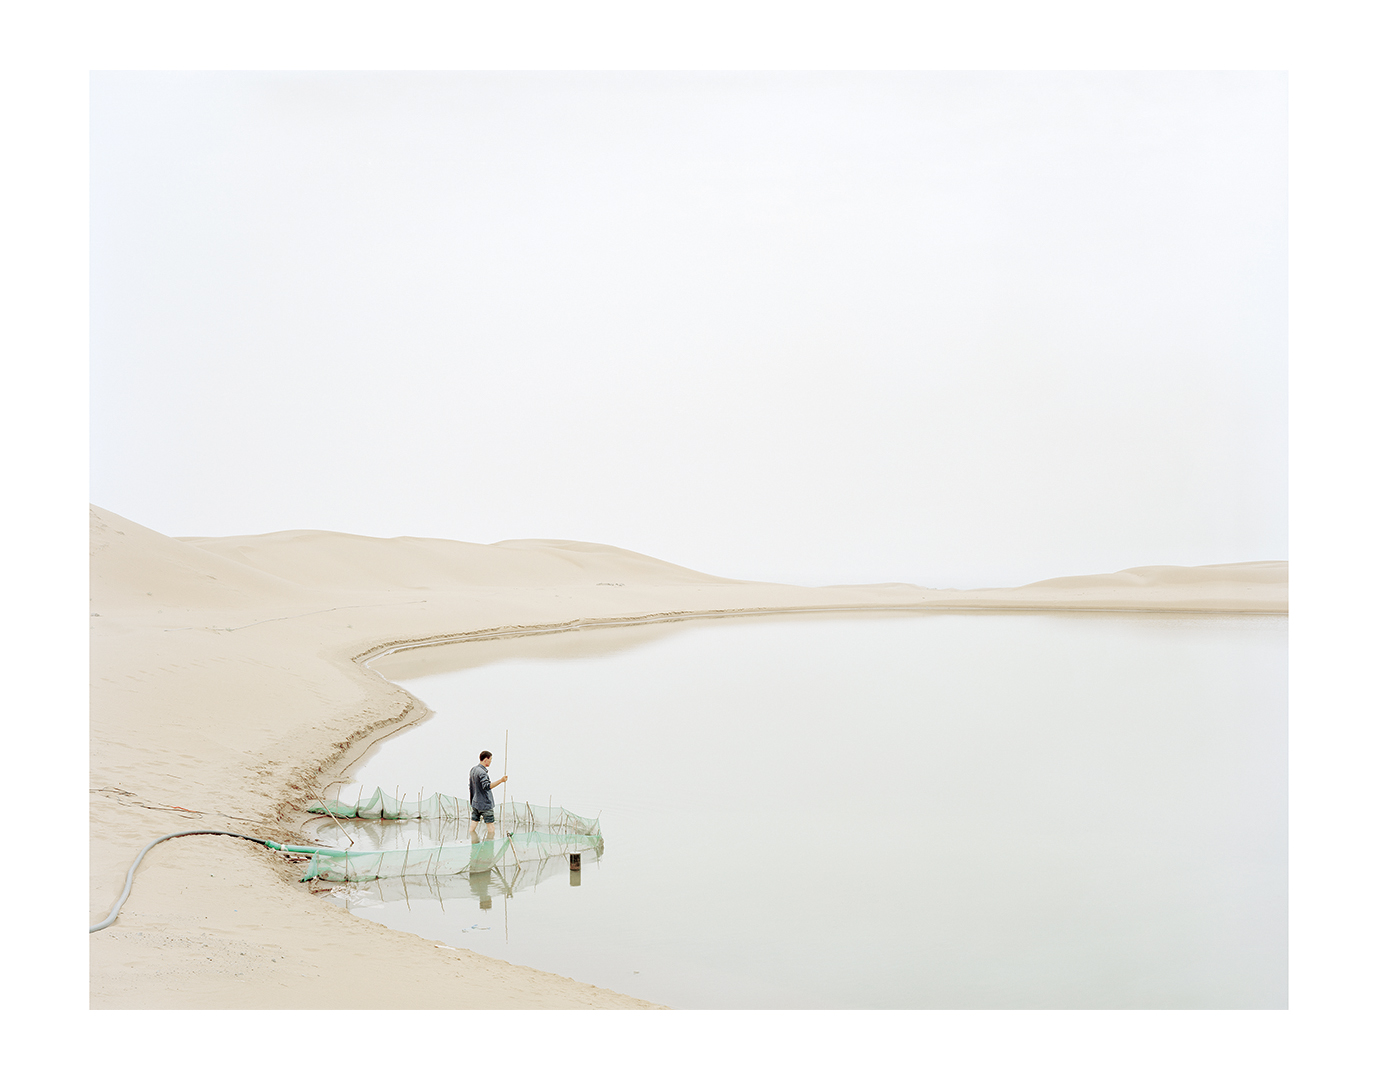 zhang kechun the yellow river acirc burn magazine if it s colorful or gloomy if it s only an imagination and reality it always embraces people s life and fate joy and sorrow faith and hesitance